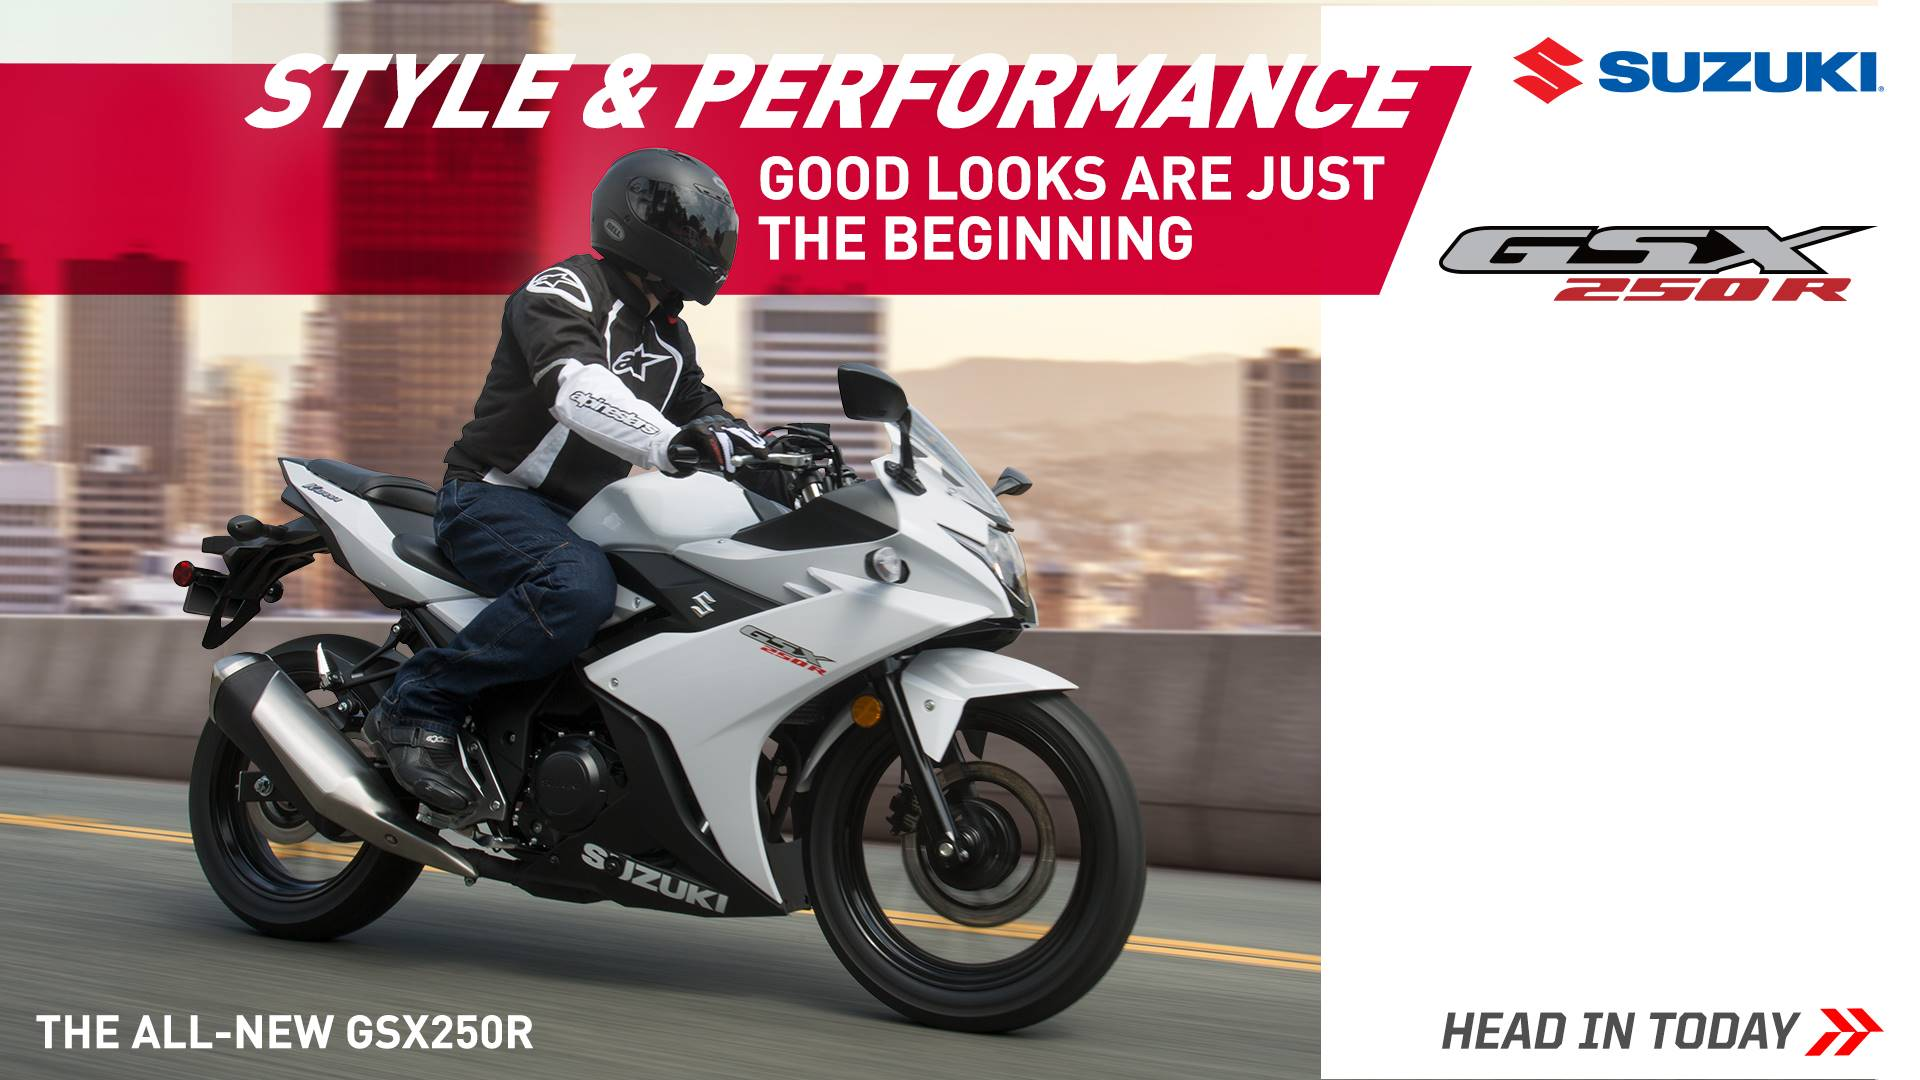 Suzuki Motor of America Inc. Suzuki Fall Suzukifest Sportbike (except GSX-R100 models) and Standard Motorcycle Financing as Low as 1.99% APR for 36 Months or Customer Cash Offer